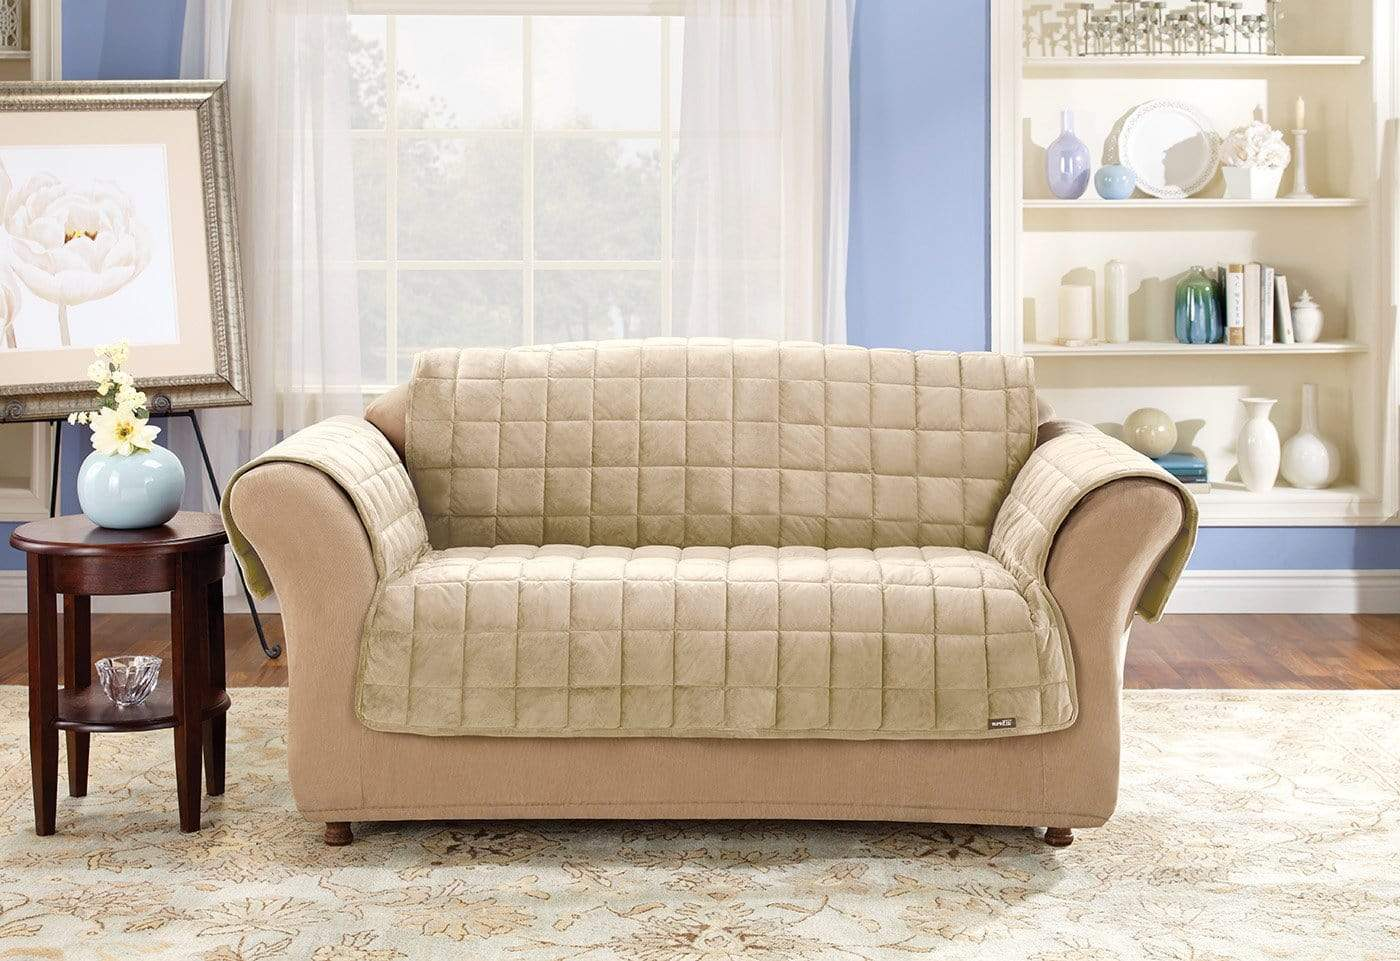 Deluxe Comfort Sofa Furniture Cover With Arms Microban® Antimicrobial Pet Furniture Cover Machine Washable - Sofa / Ivory